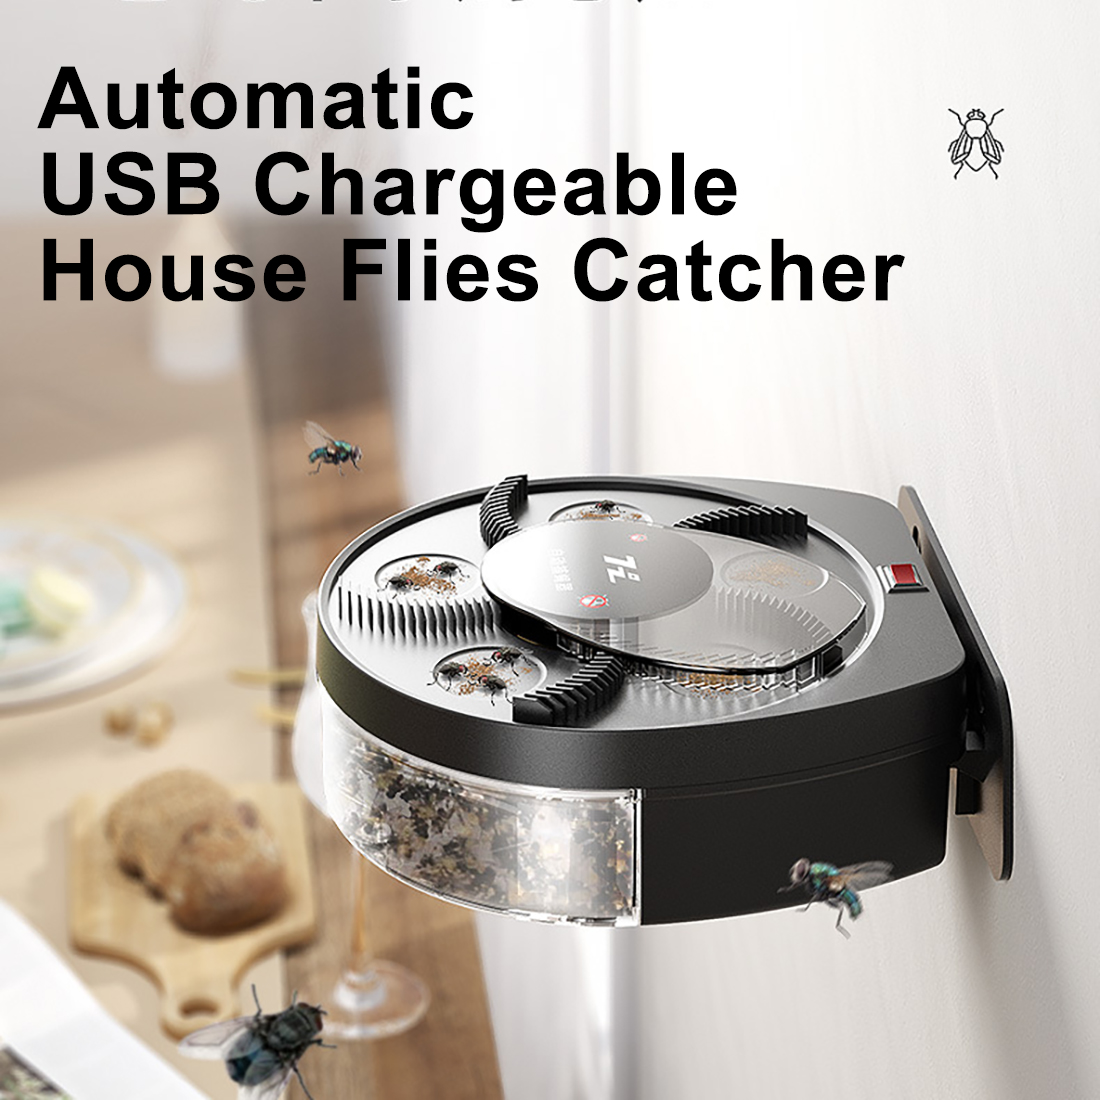 USB Rechargeable Portable Electric House Fly Trap Automatic Hanging Catch Fly Catcher Killing Flies Killer With Bait Station